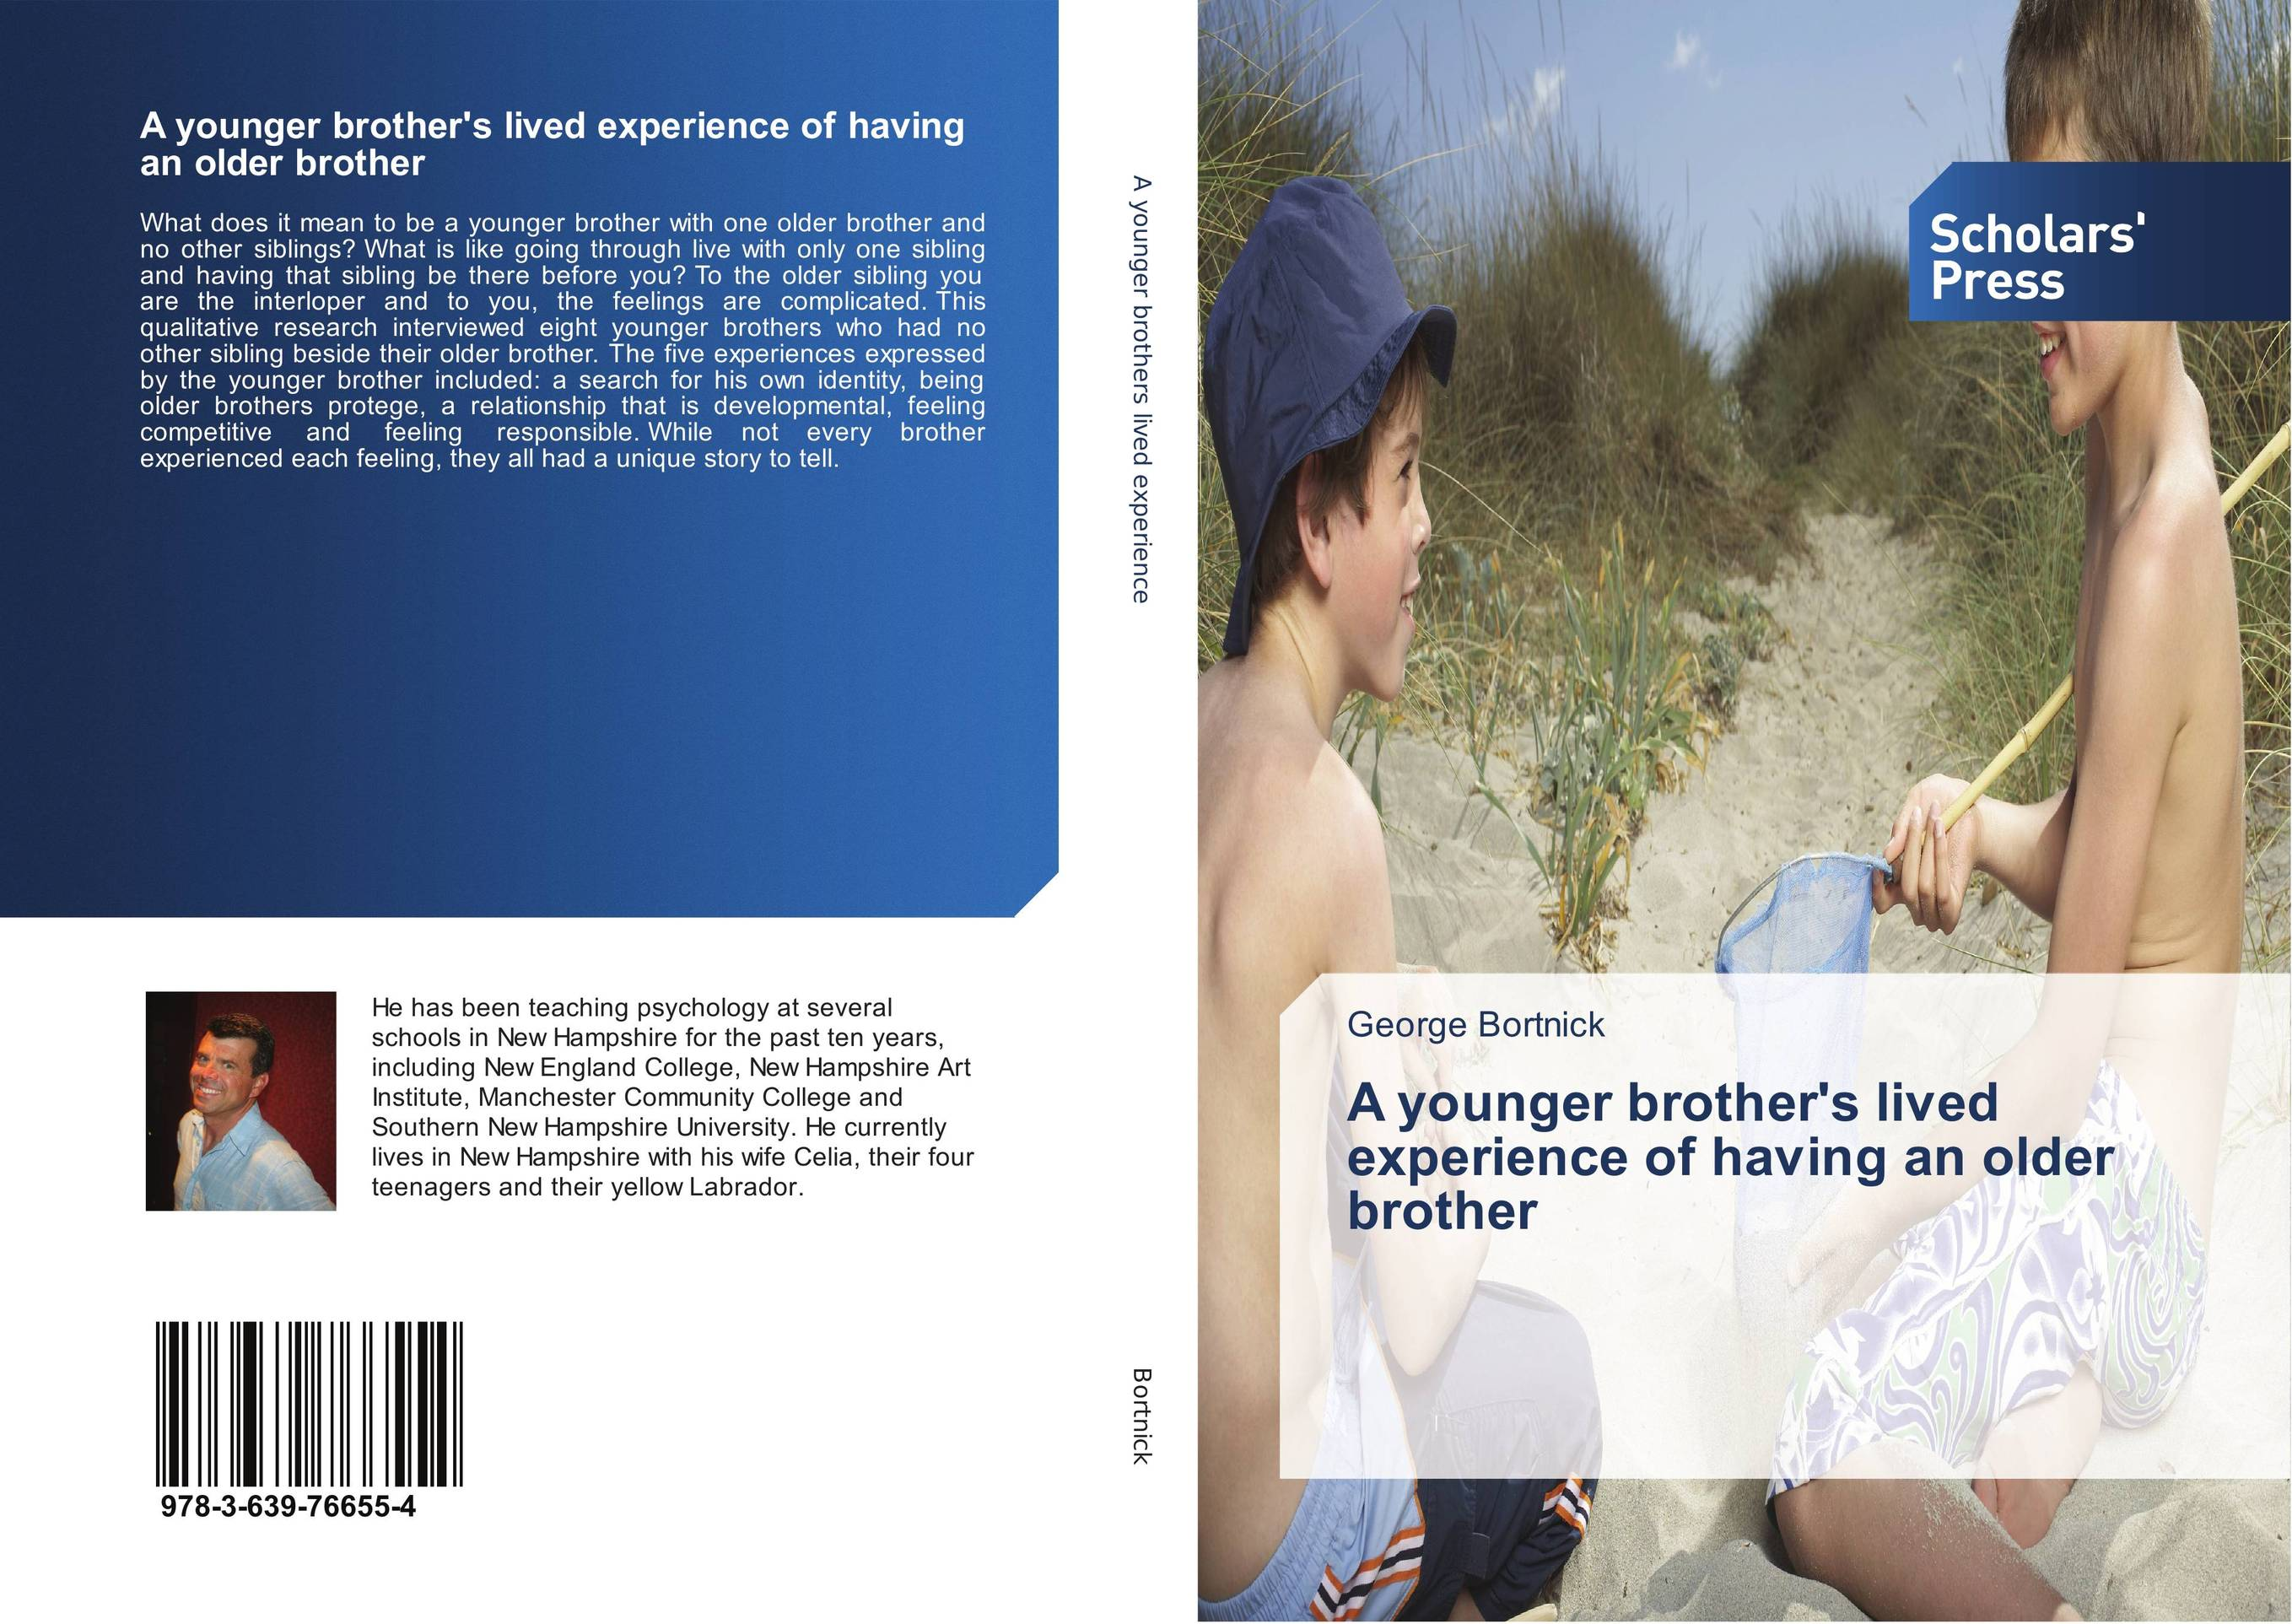 A younger brother's lived experience of having an older brother my own dear brother